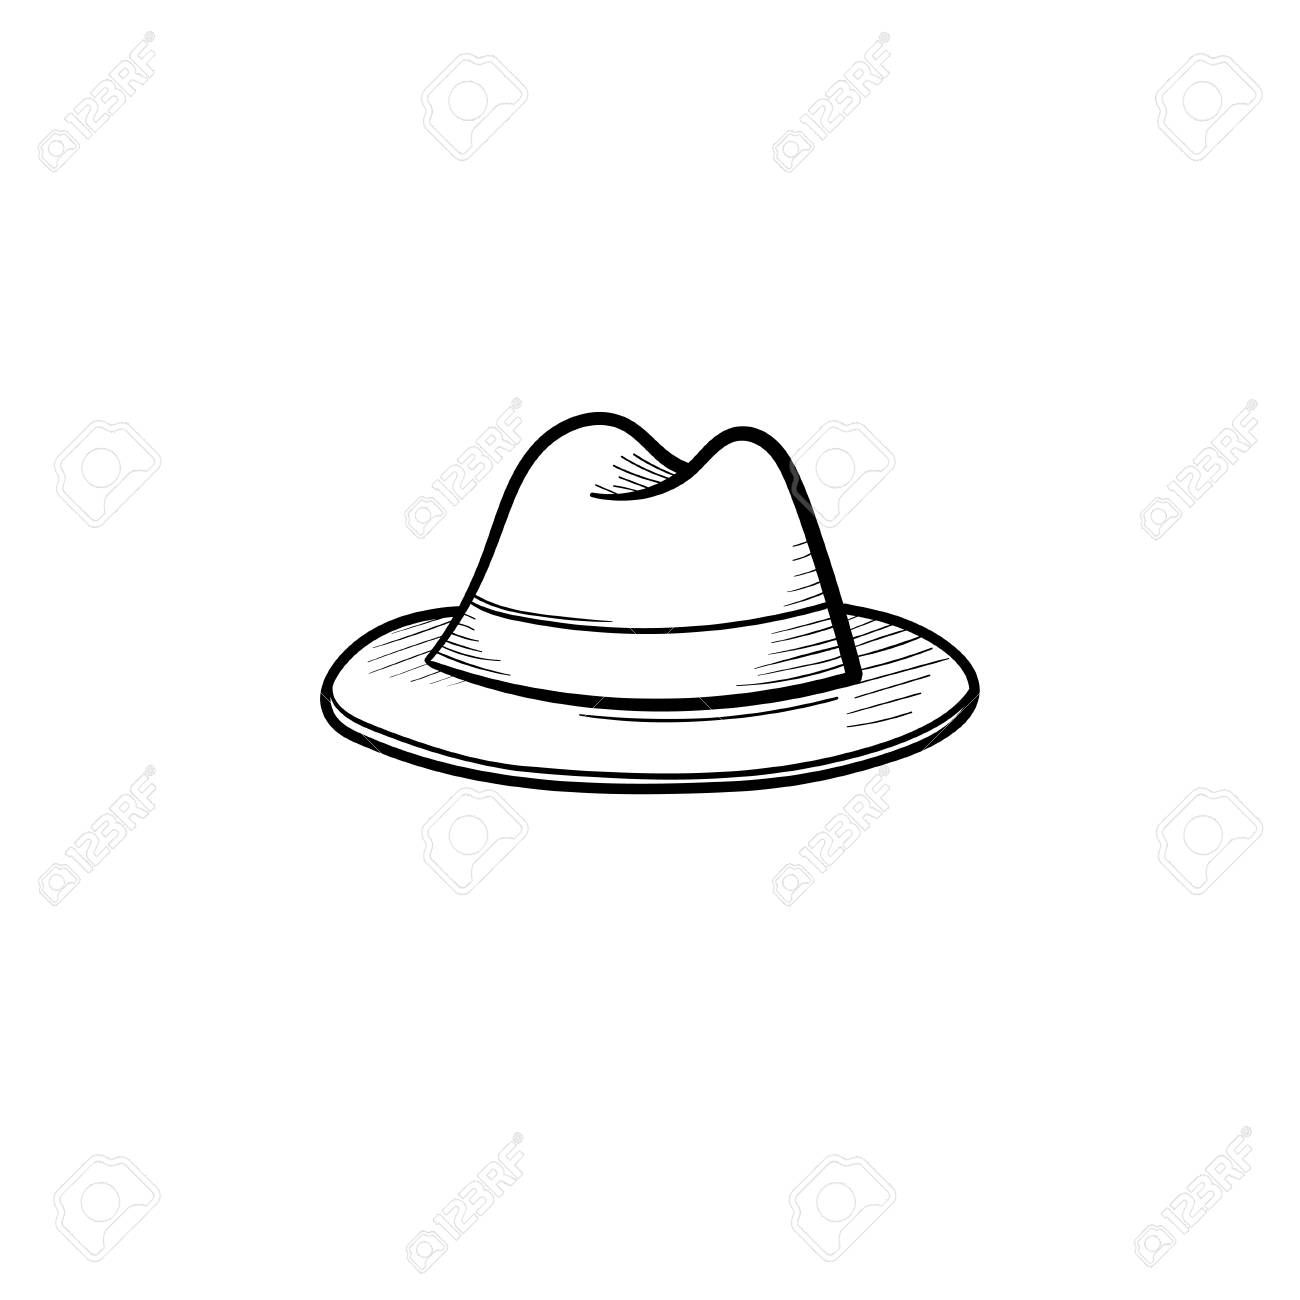 c0001166a72 Vector - Vector hand drawn fedora hat outline doodle icon. Trilby sketch  illustration for print